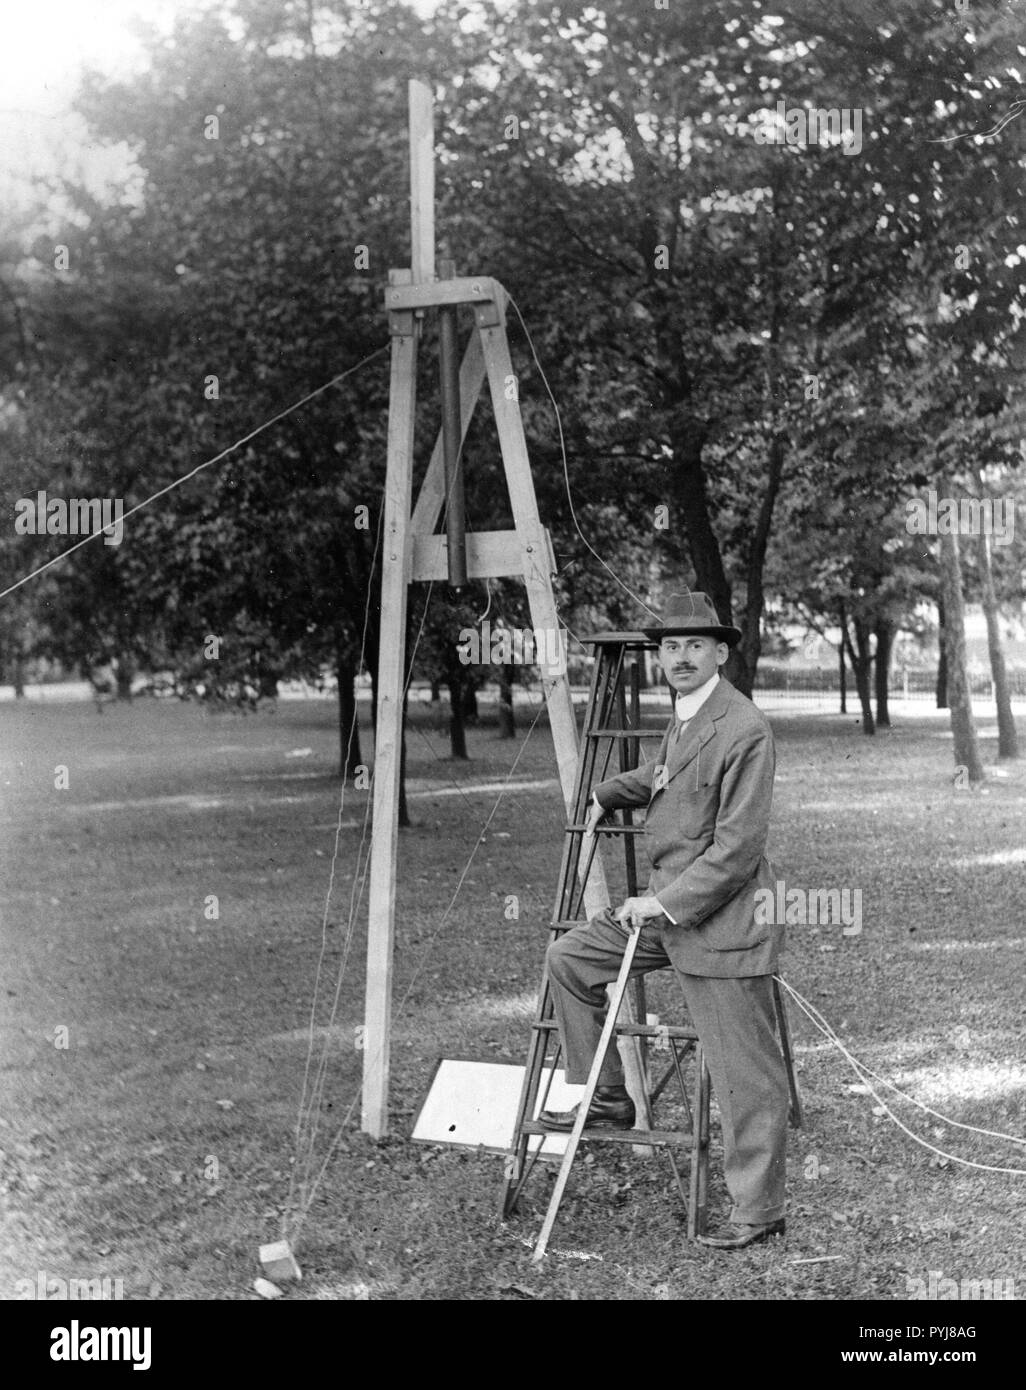 Dr. Robert Goddard on the campus of Clark University, Worcester, Mass. mounting a srocket chamber for the 1915-1916 experiments.  Dr. Goddard earned his doctorate at Clark and also taught physics there. - Stock Image